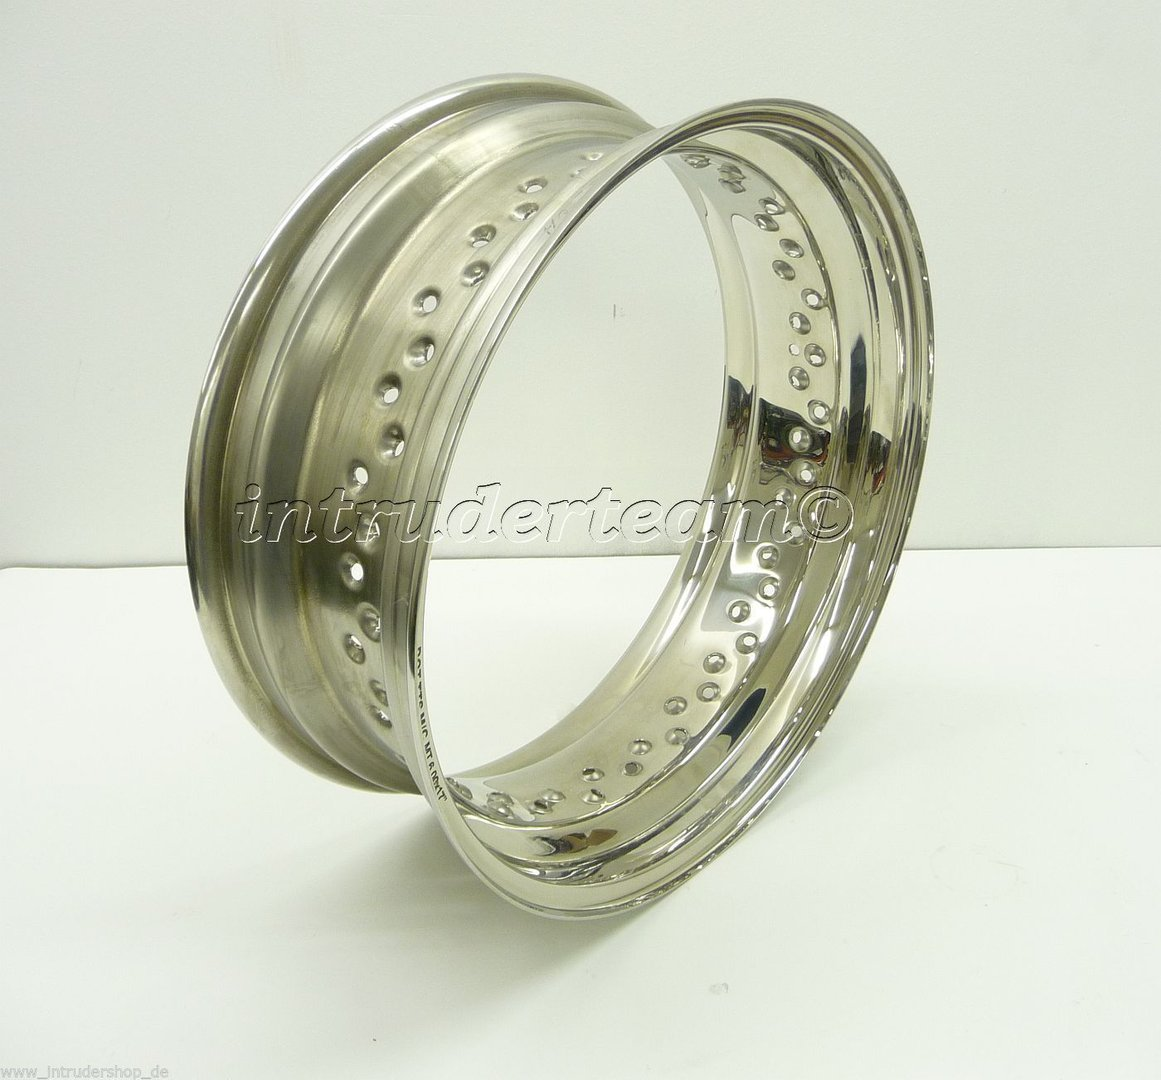 Felge Hinterrad rear chrome rims  7.00x18  52 Loch Honda VT750